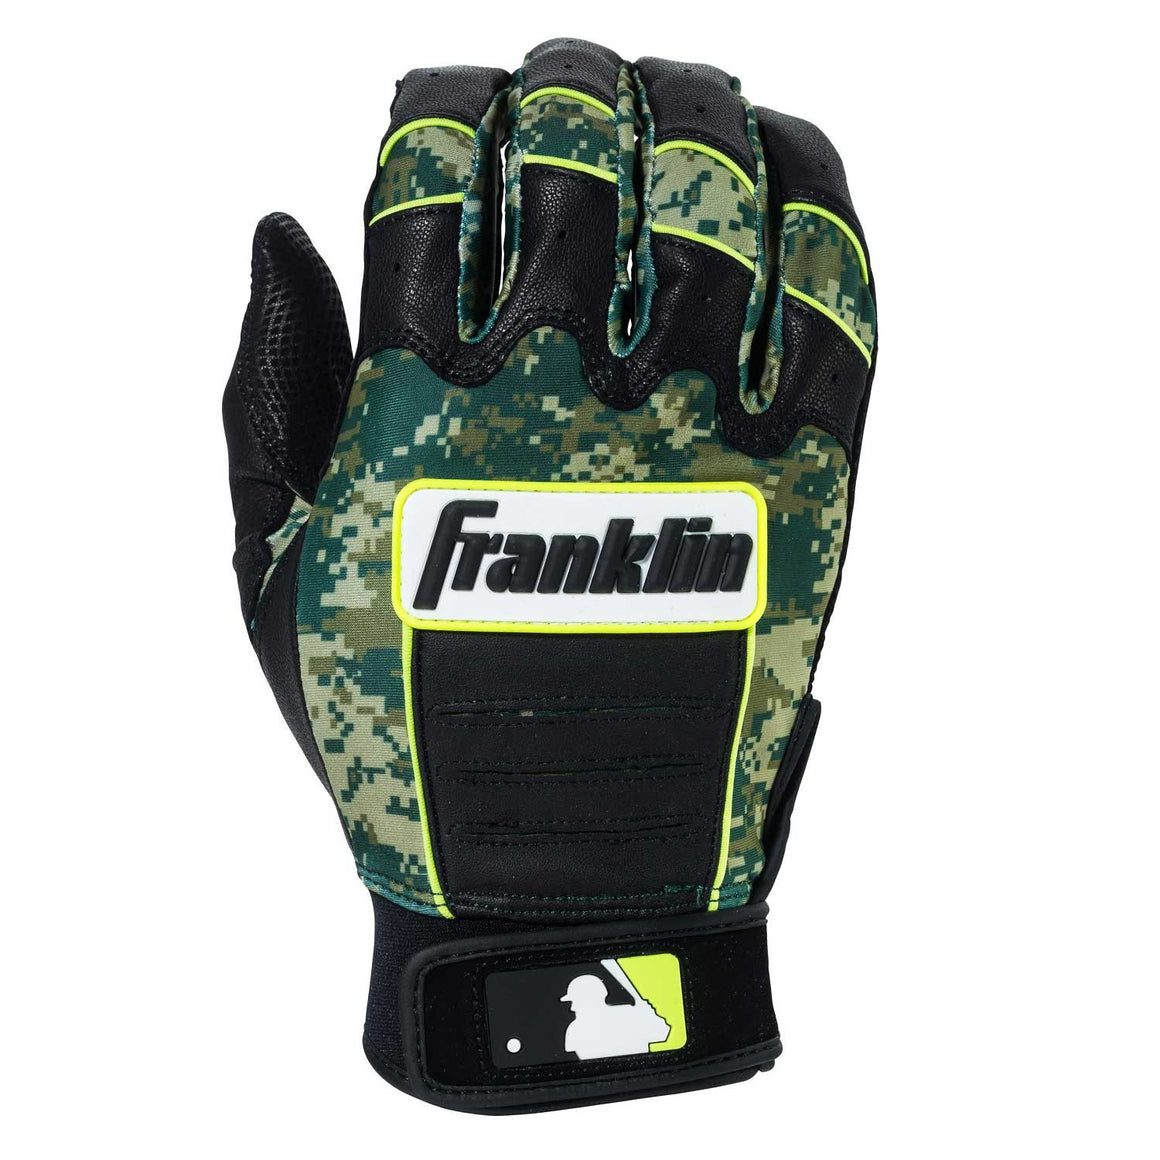 Franklin MLB CFX Digi-Camo Adult Batting Gloves, Black/Green, Size Small